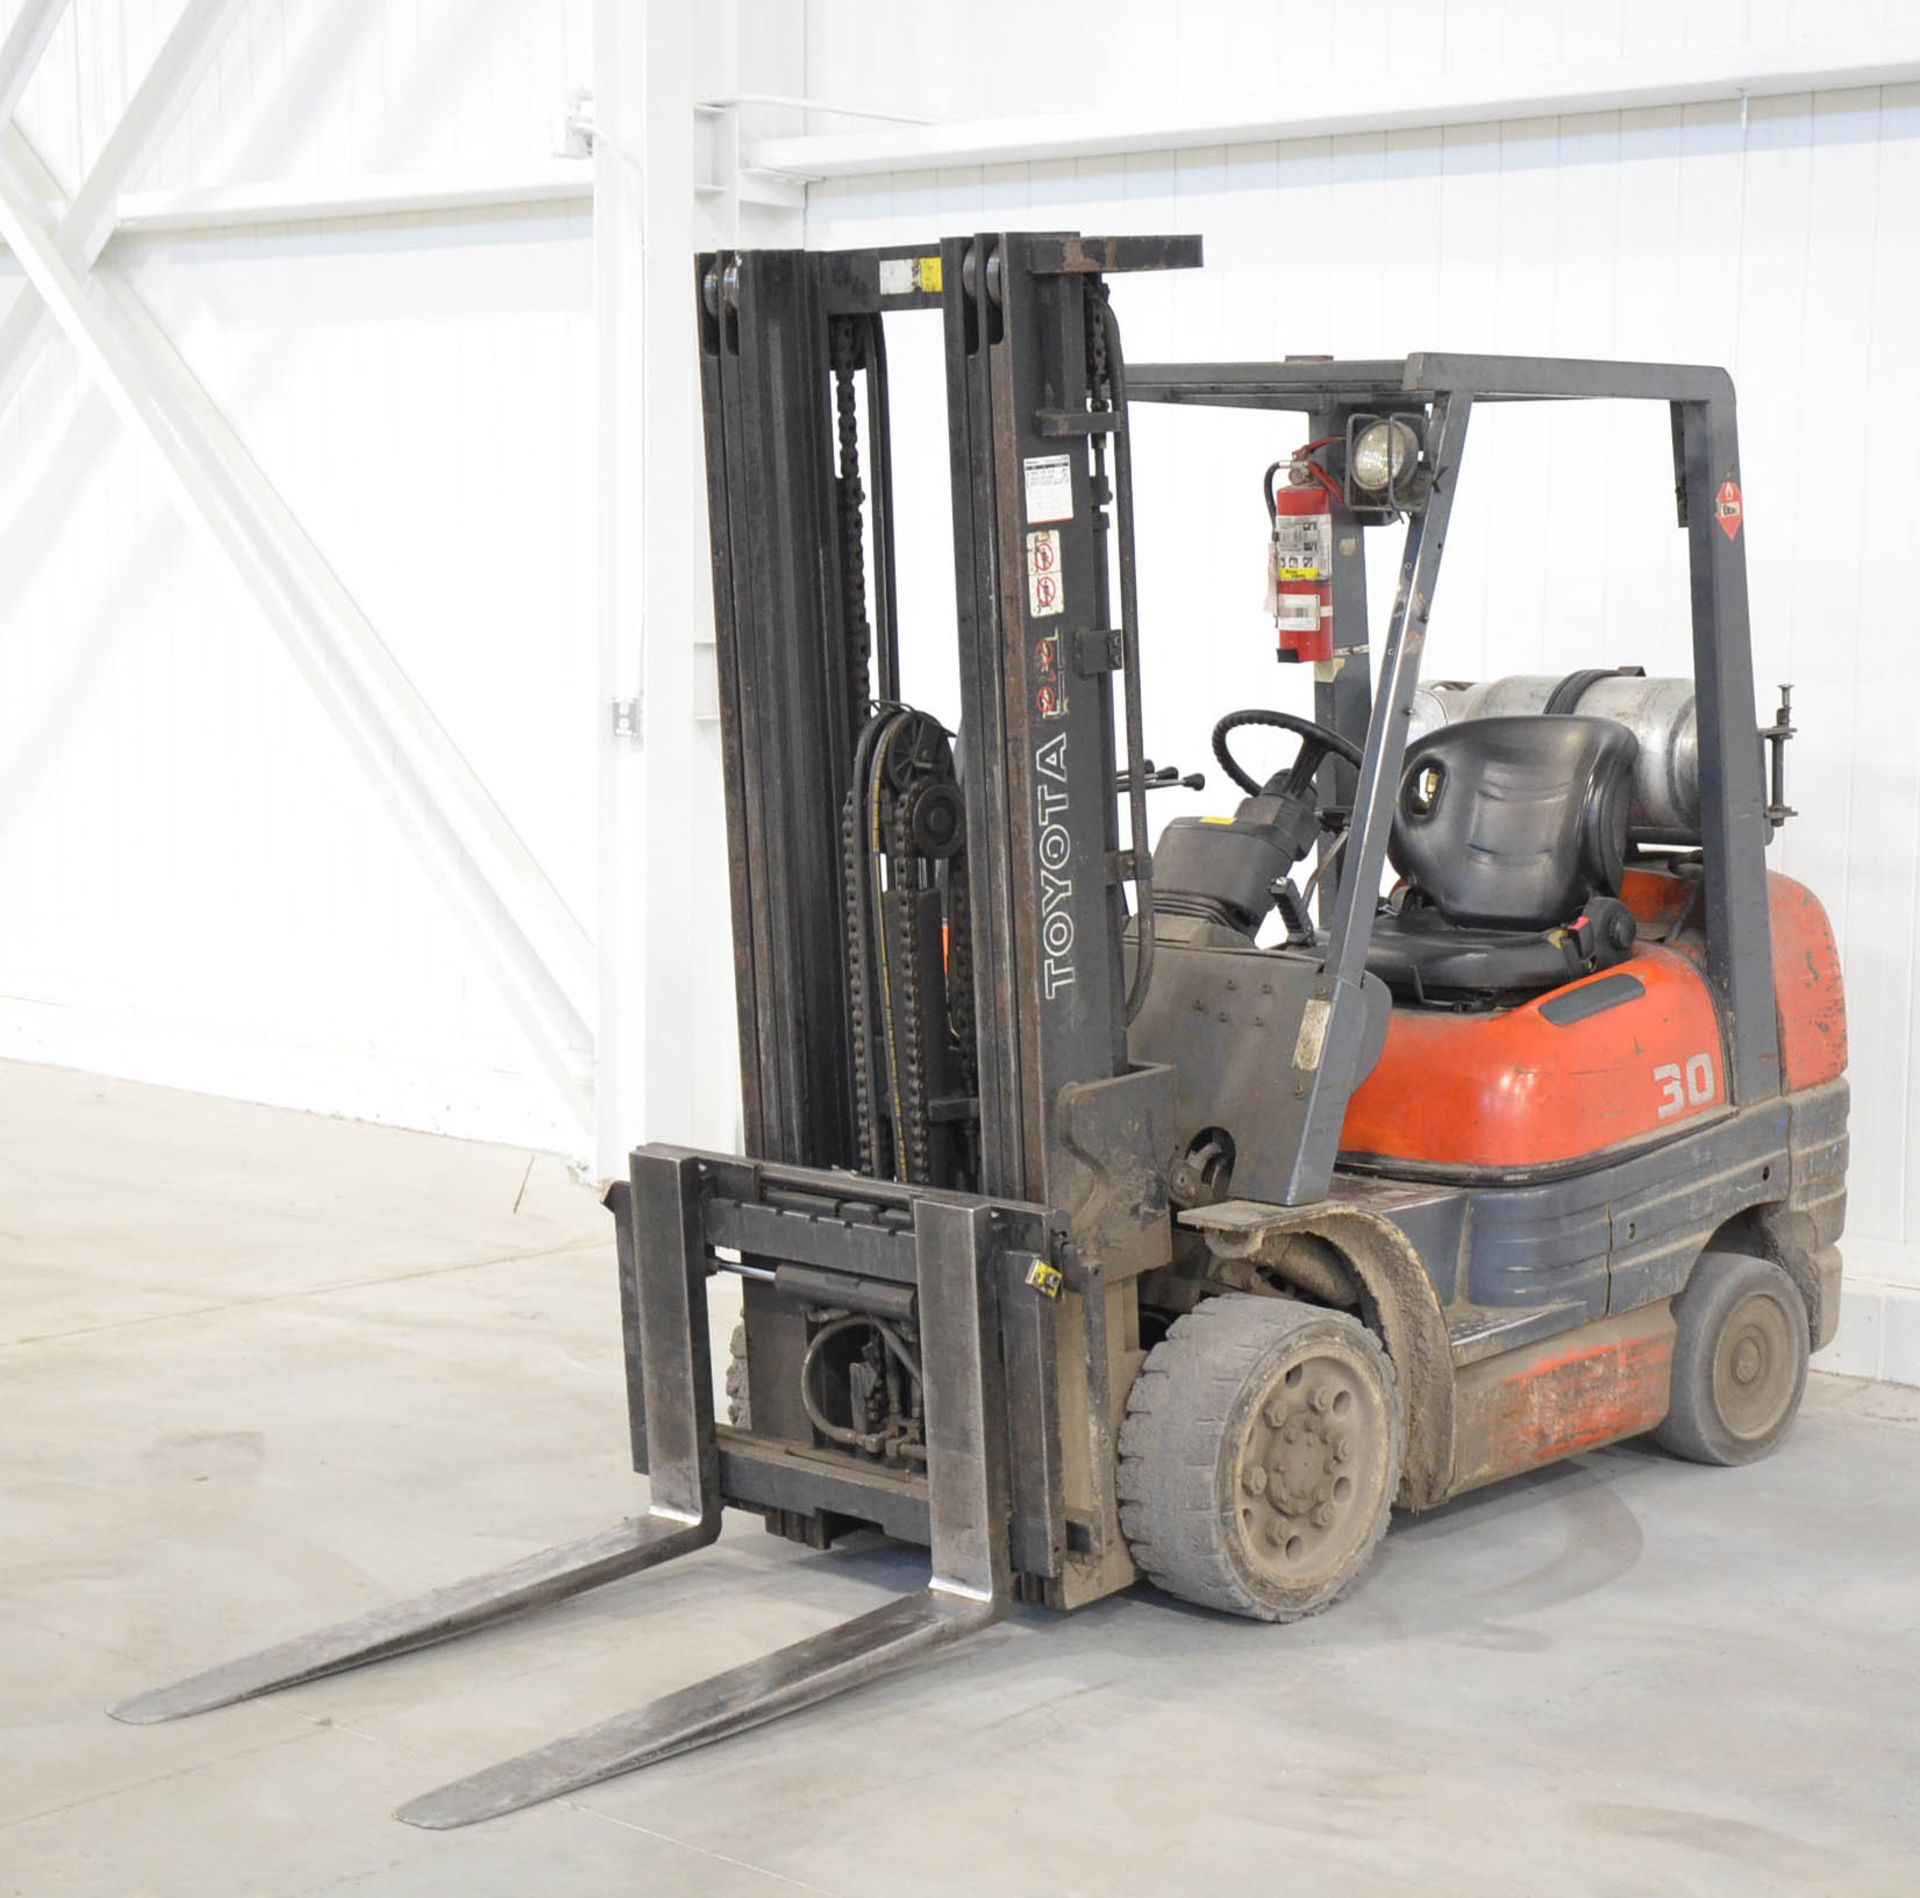 """TOYOTA 42-6FGCU30 4,750LB CAPACITY LPG FORKLIFT WITH 187"""" MAX. VERTICAL REACH, SIDE-SHIFT, CUSHION - Image 2 of 4"""